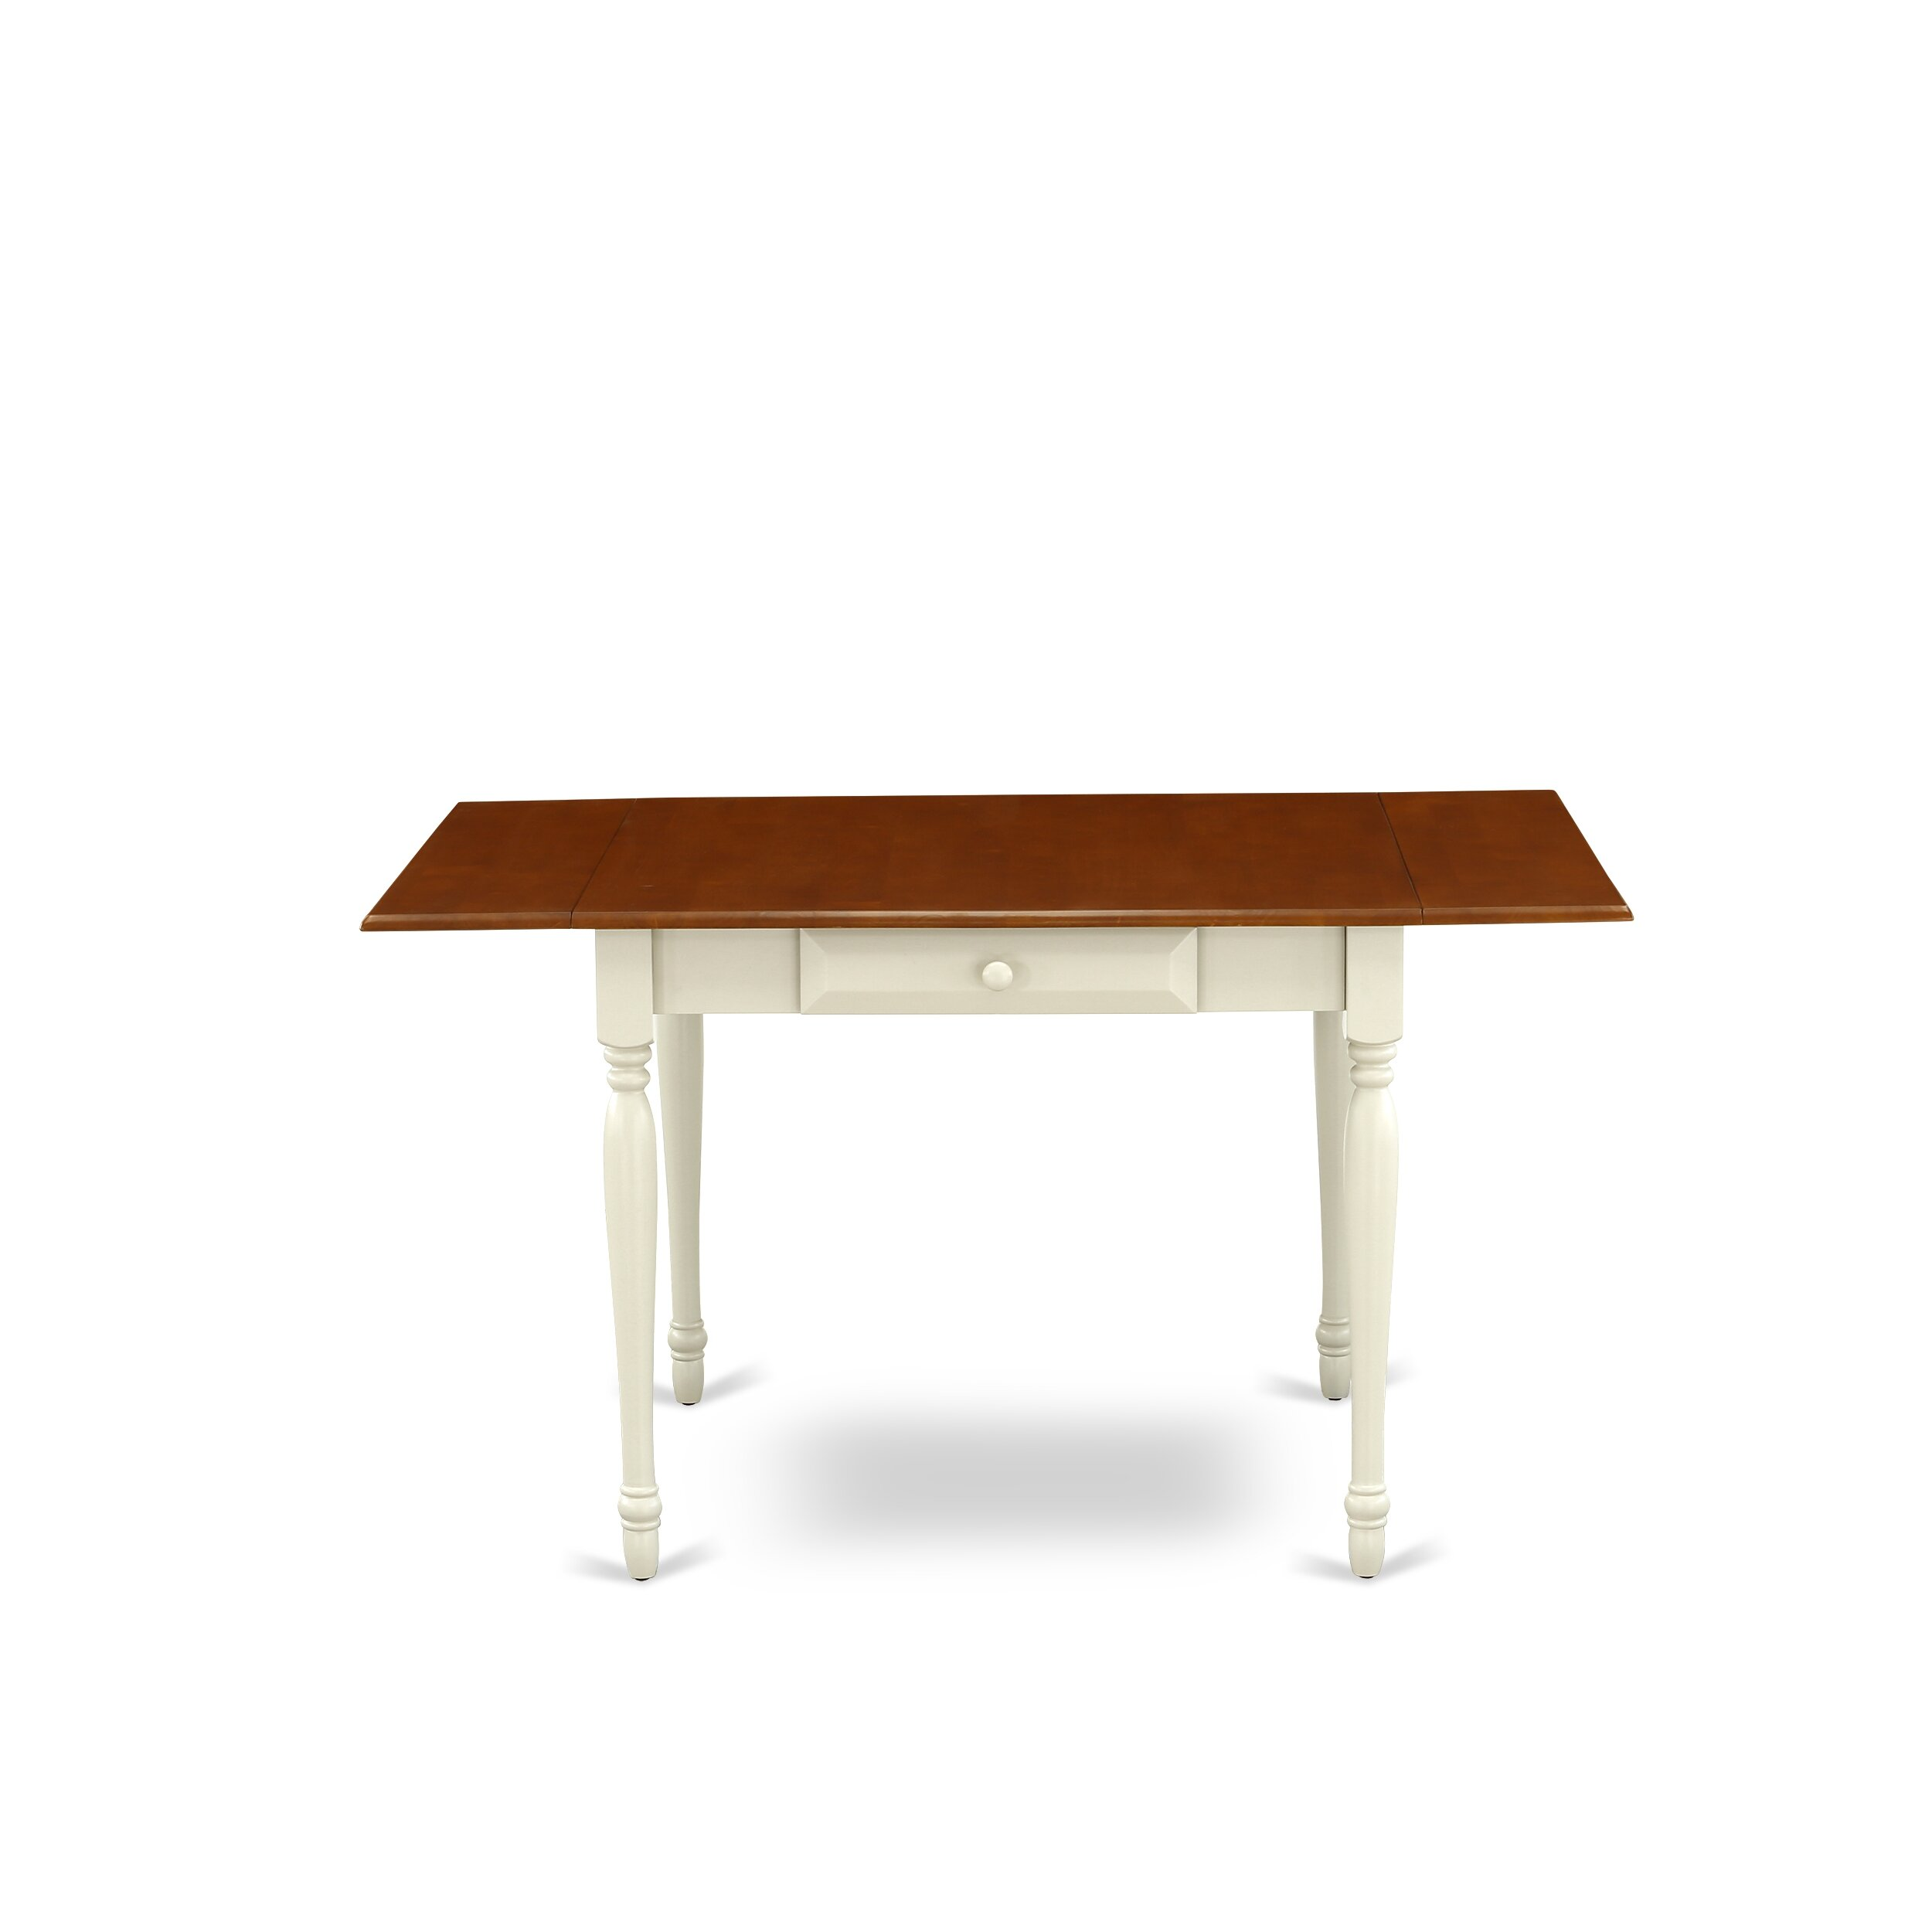 Cheap Monza Drop Leaf Rubberwood Solid Wood Dining Table Furniture Online